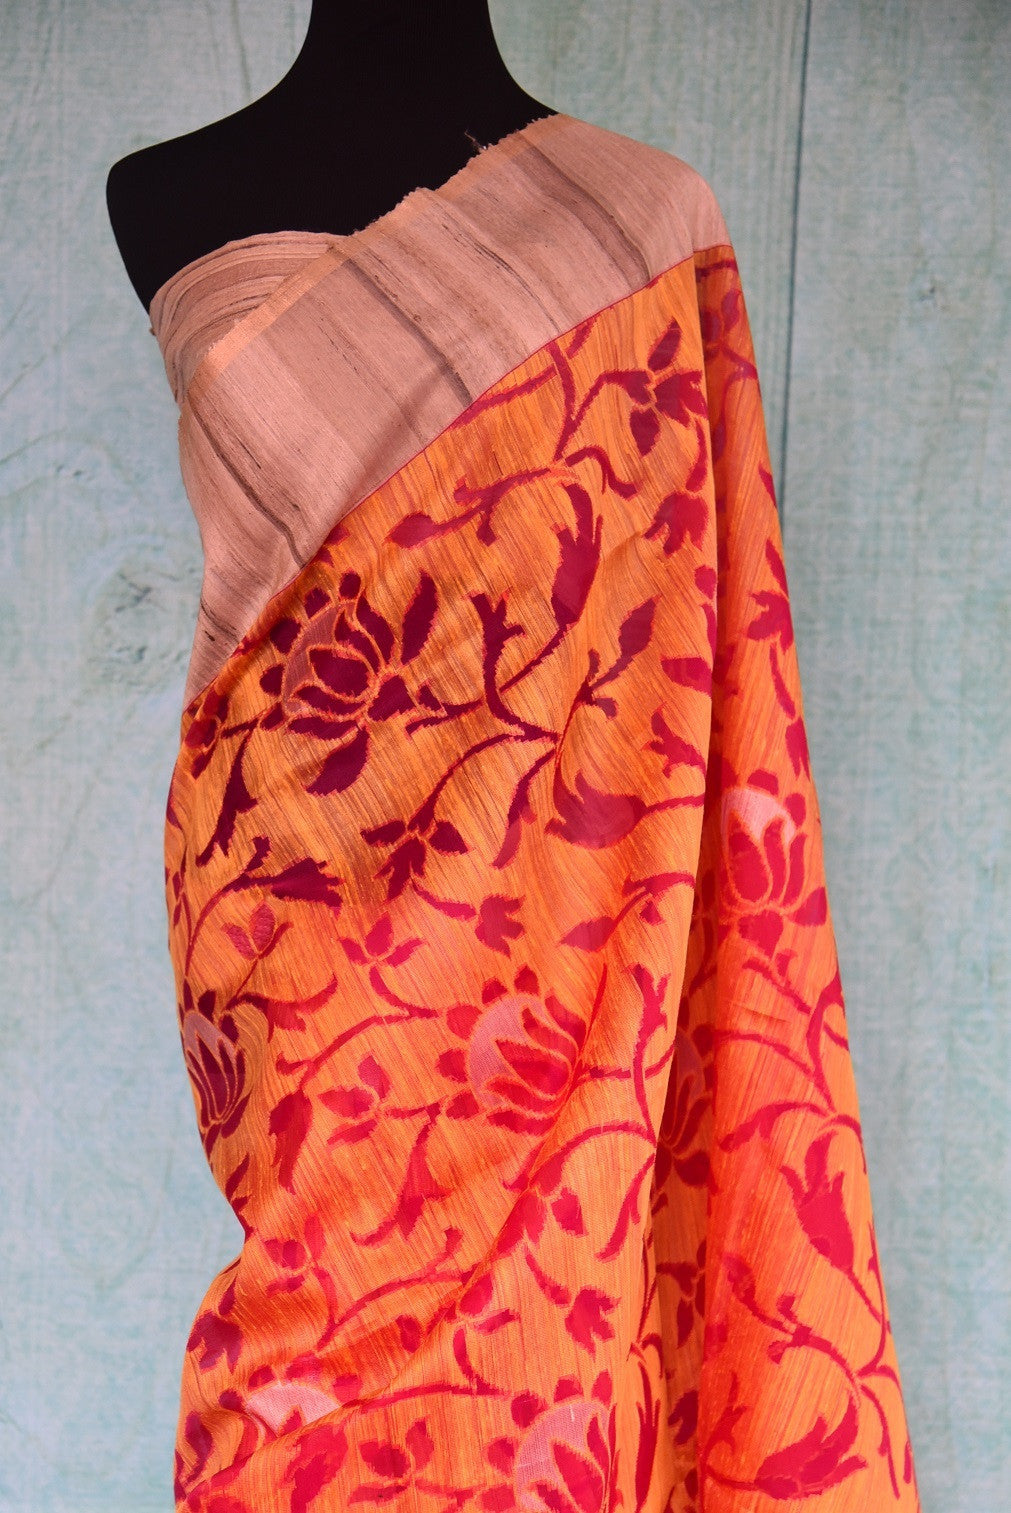 90B315 This lovely floral saree in orange and red hues makes for the perfect festive Indian wear for all seasons. The matka jute sari can be bought at our ethnic Indian clothing store in USA online or in Edison.